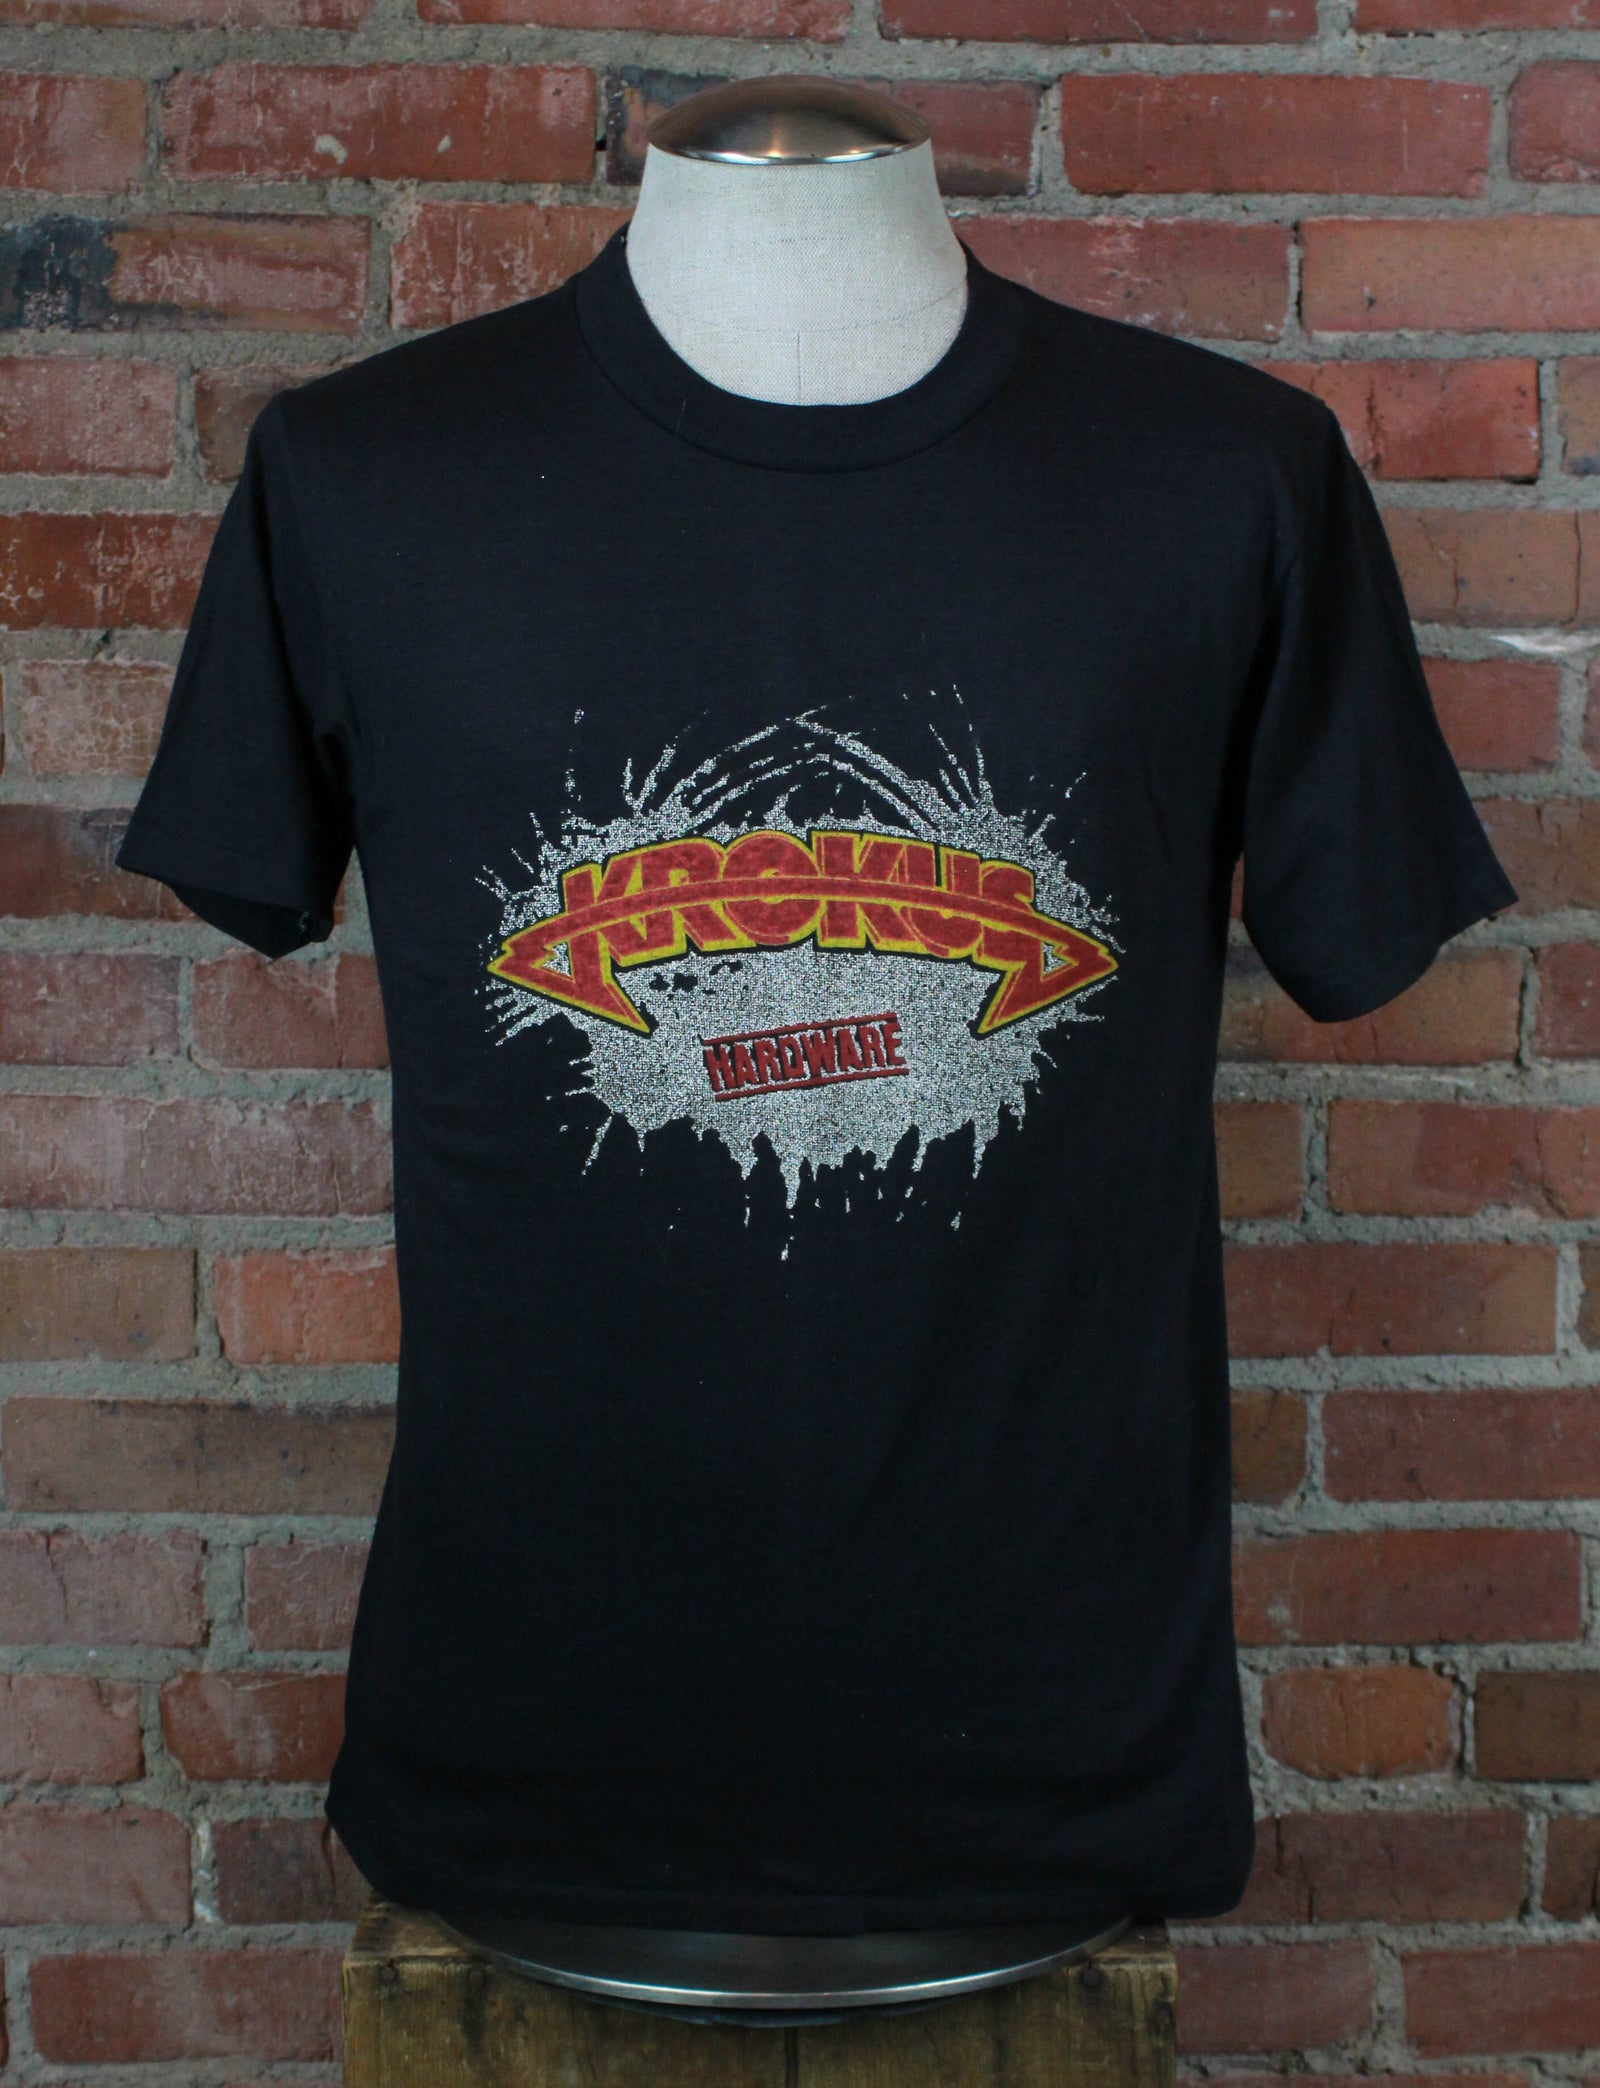 Vintage Krokus Concert T Shirt 1981 Hardware Tour Of Britain - Medium